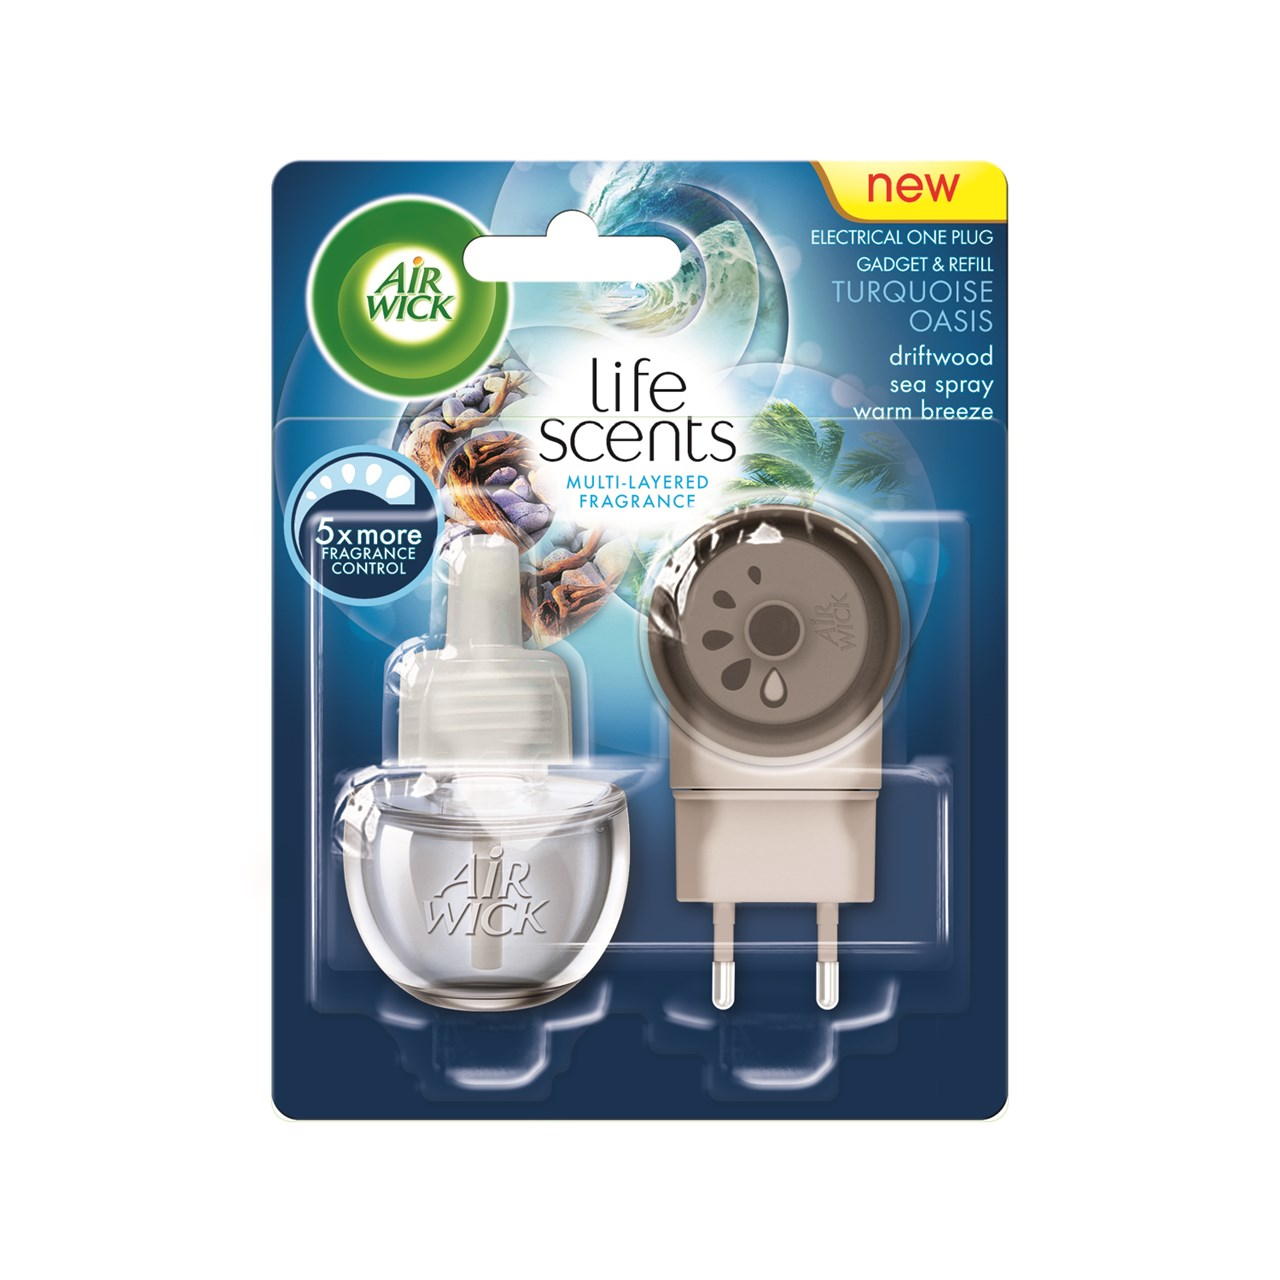 Life Scents Turquoise Oasis Electrical Plug In Gadget & Refill